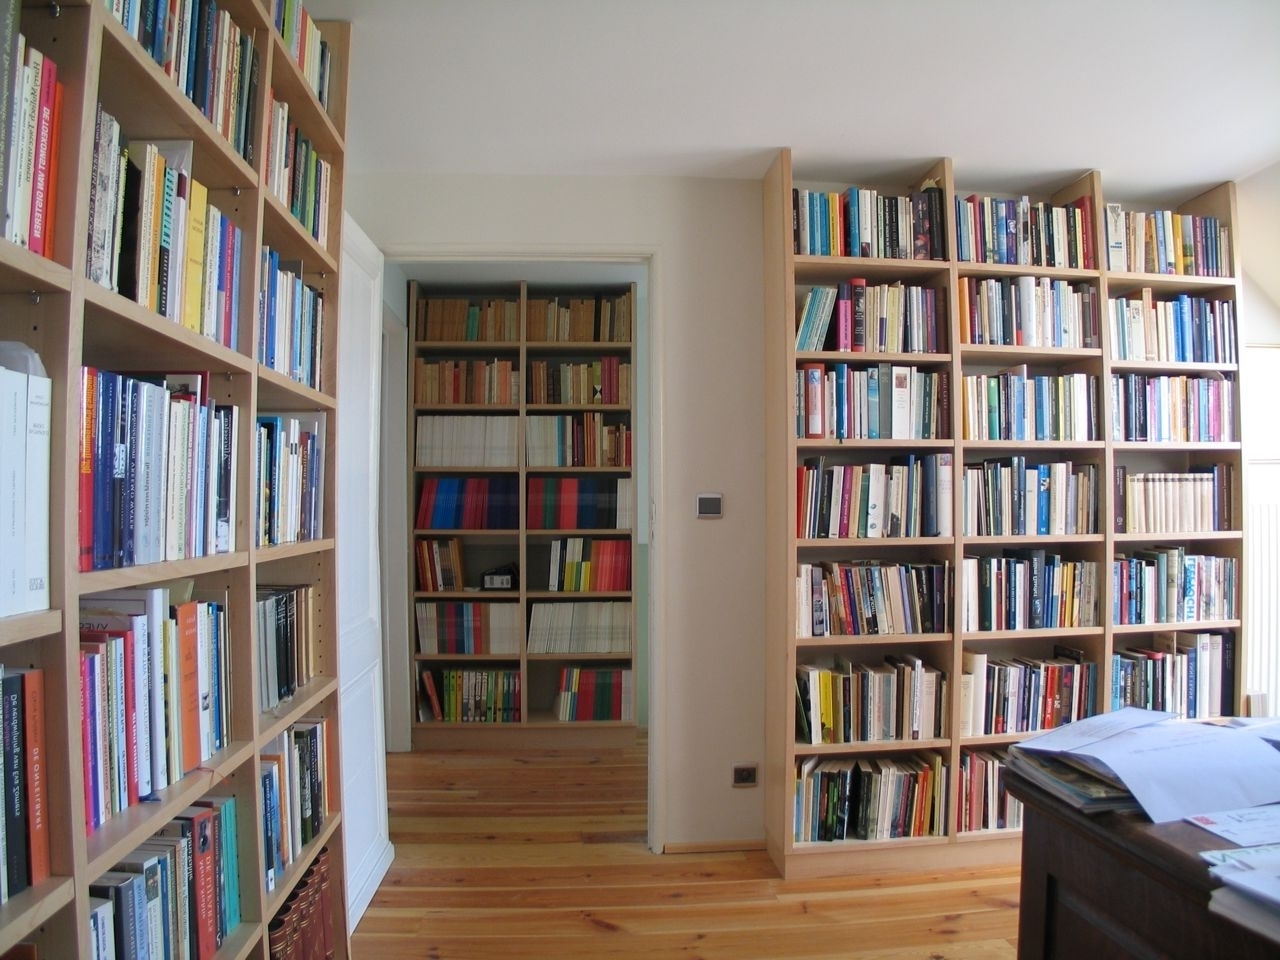 Floor To Ceiling Bookcases With Regard To Latest Wall To Ceiling Bookshelves (View 9 of 15)